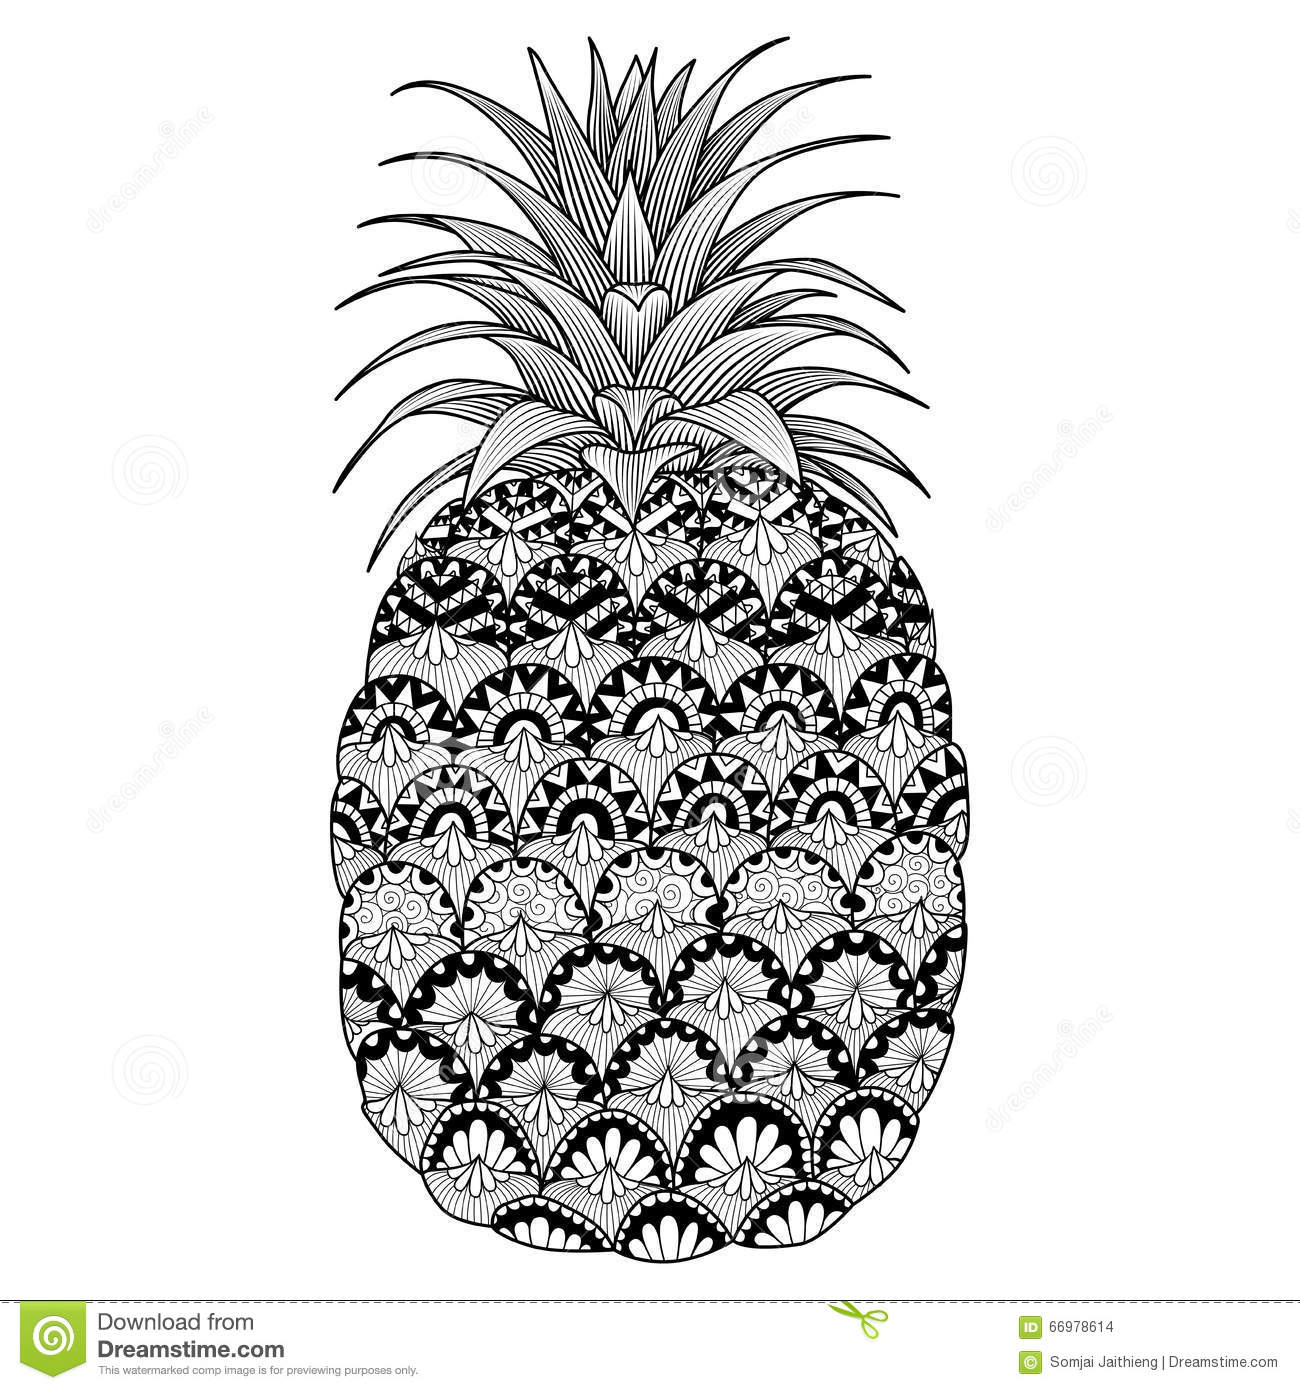 Cool T Shirt Schwarz S Line Art Design Of Pineapple For Coloring Book For Adult